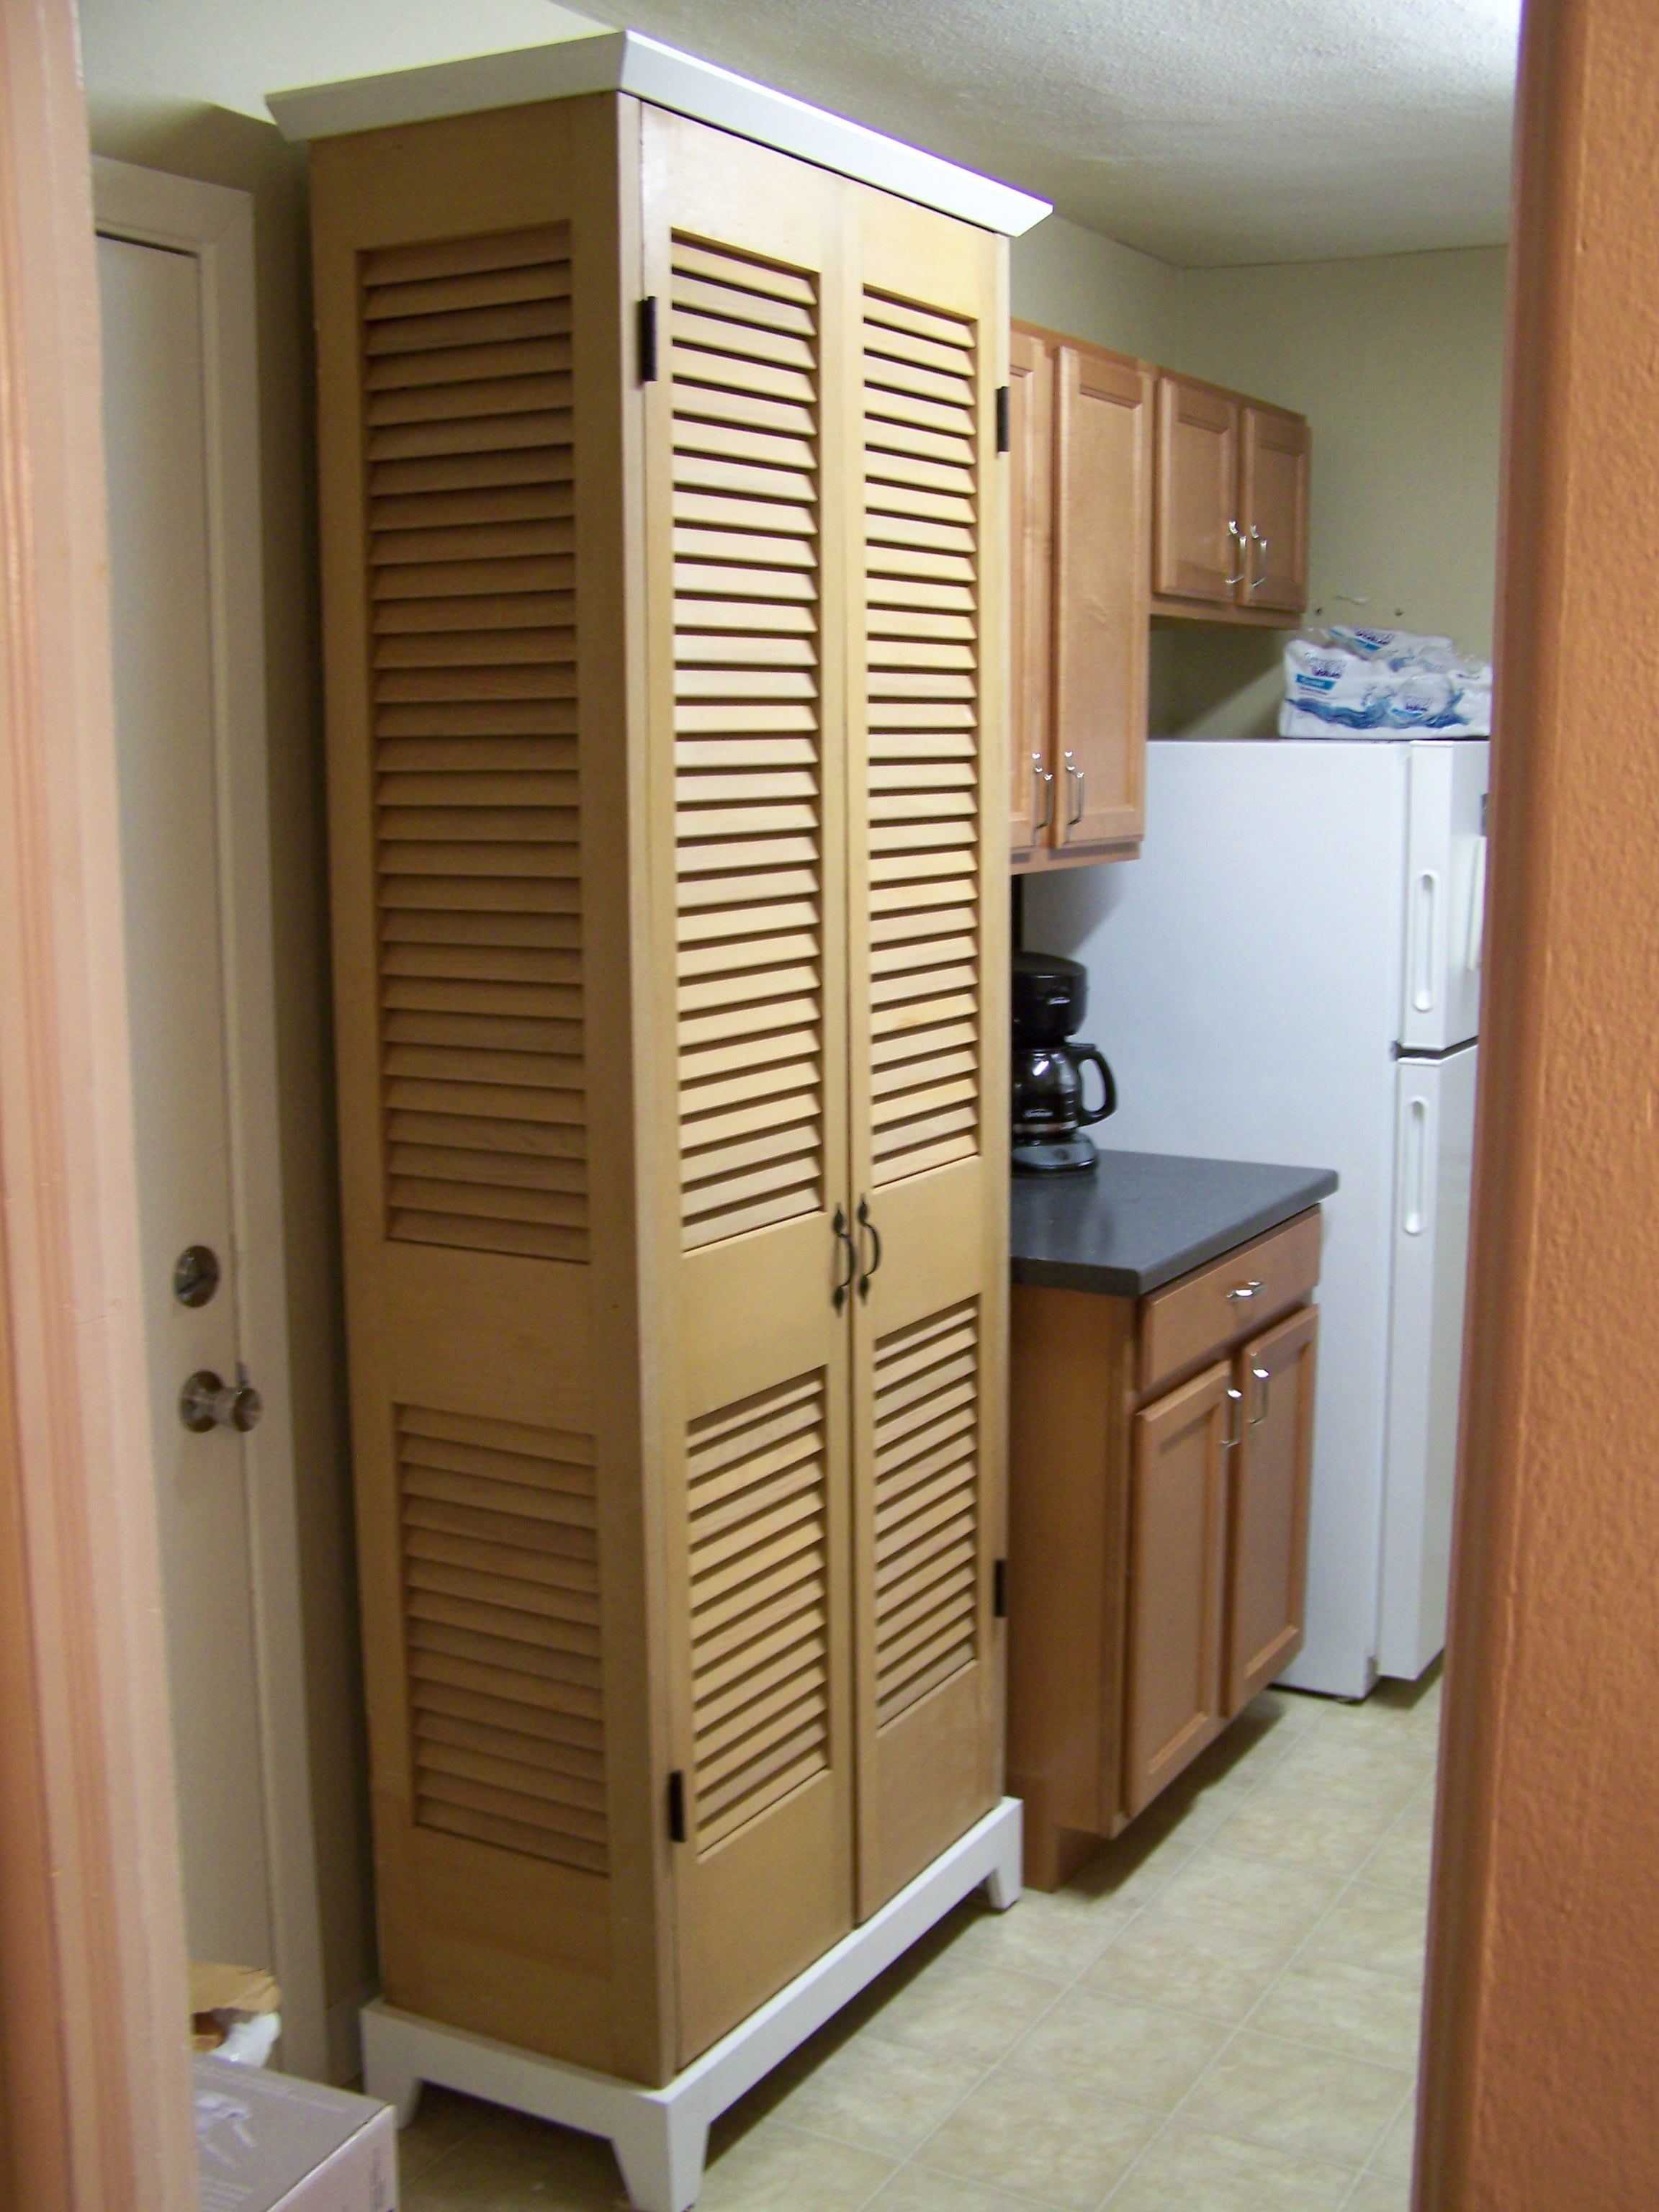 Bifold Kitchen Cabinet Doors Repurposed Bifolding Doors Using This Idea To Create A Door For